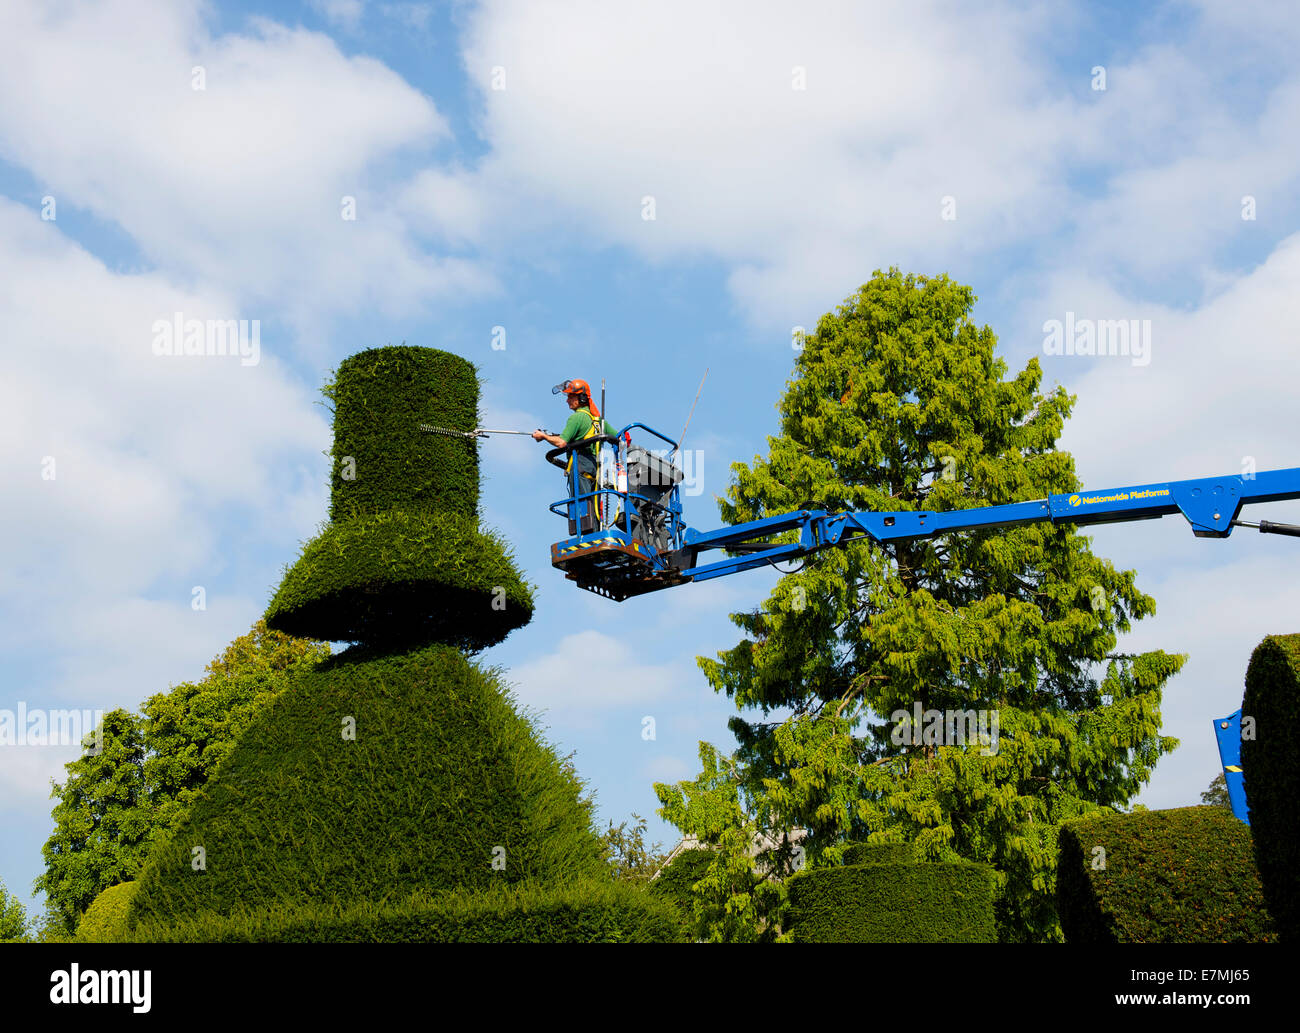 Man trimming topiary from cherry-picker, Levens Hall, South Lakeland, Cumbria, England UK - Stock Image